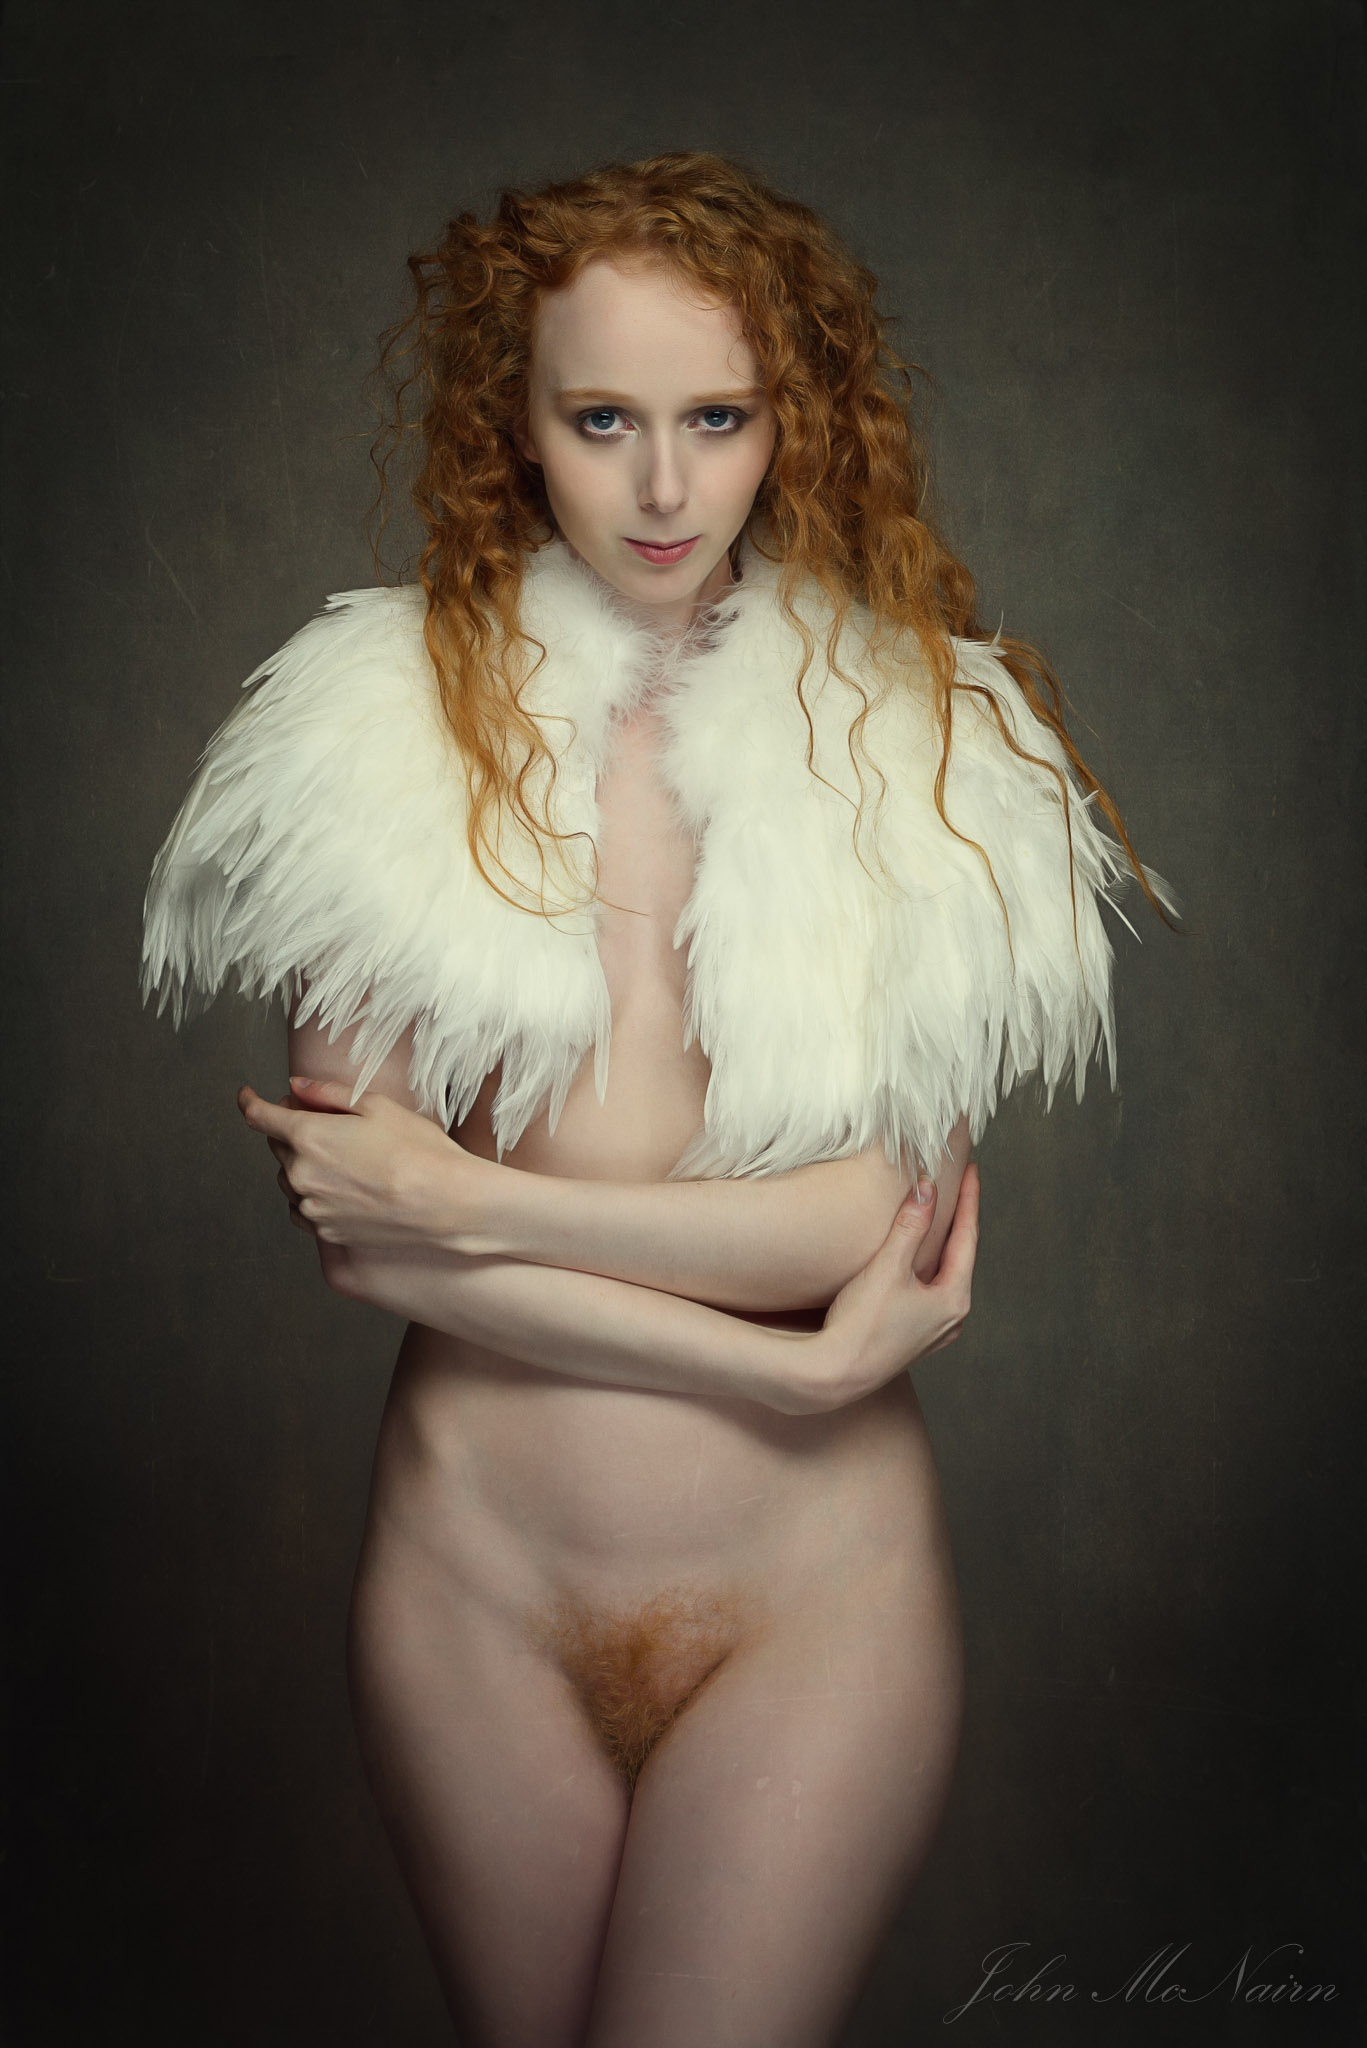 Gemma in Feathers by John McNairn